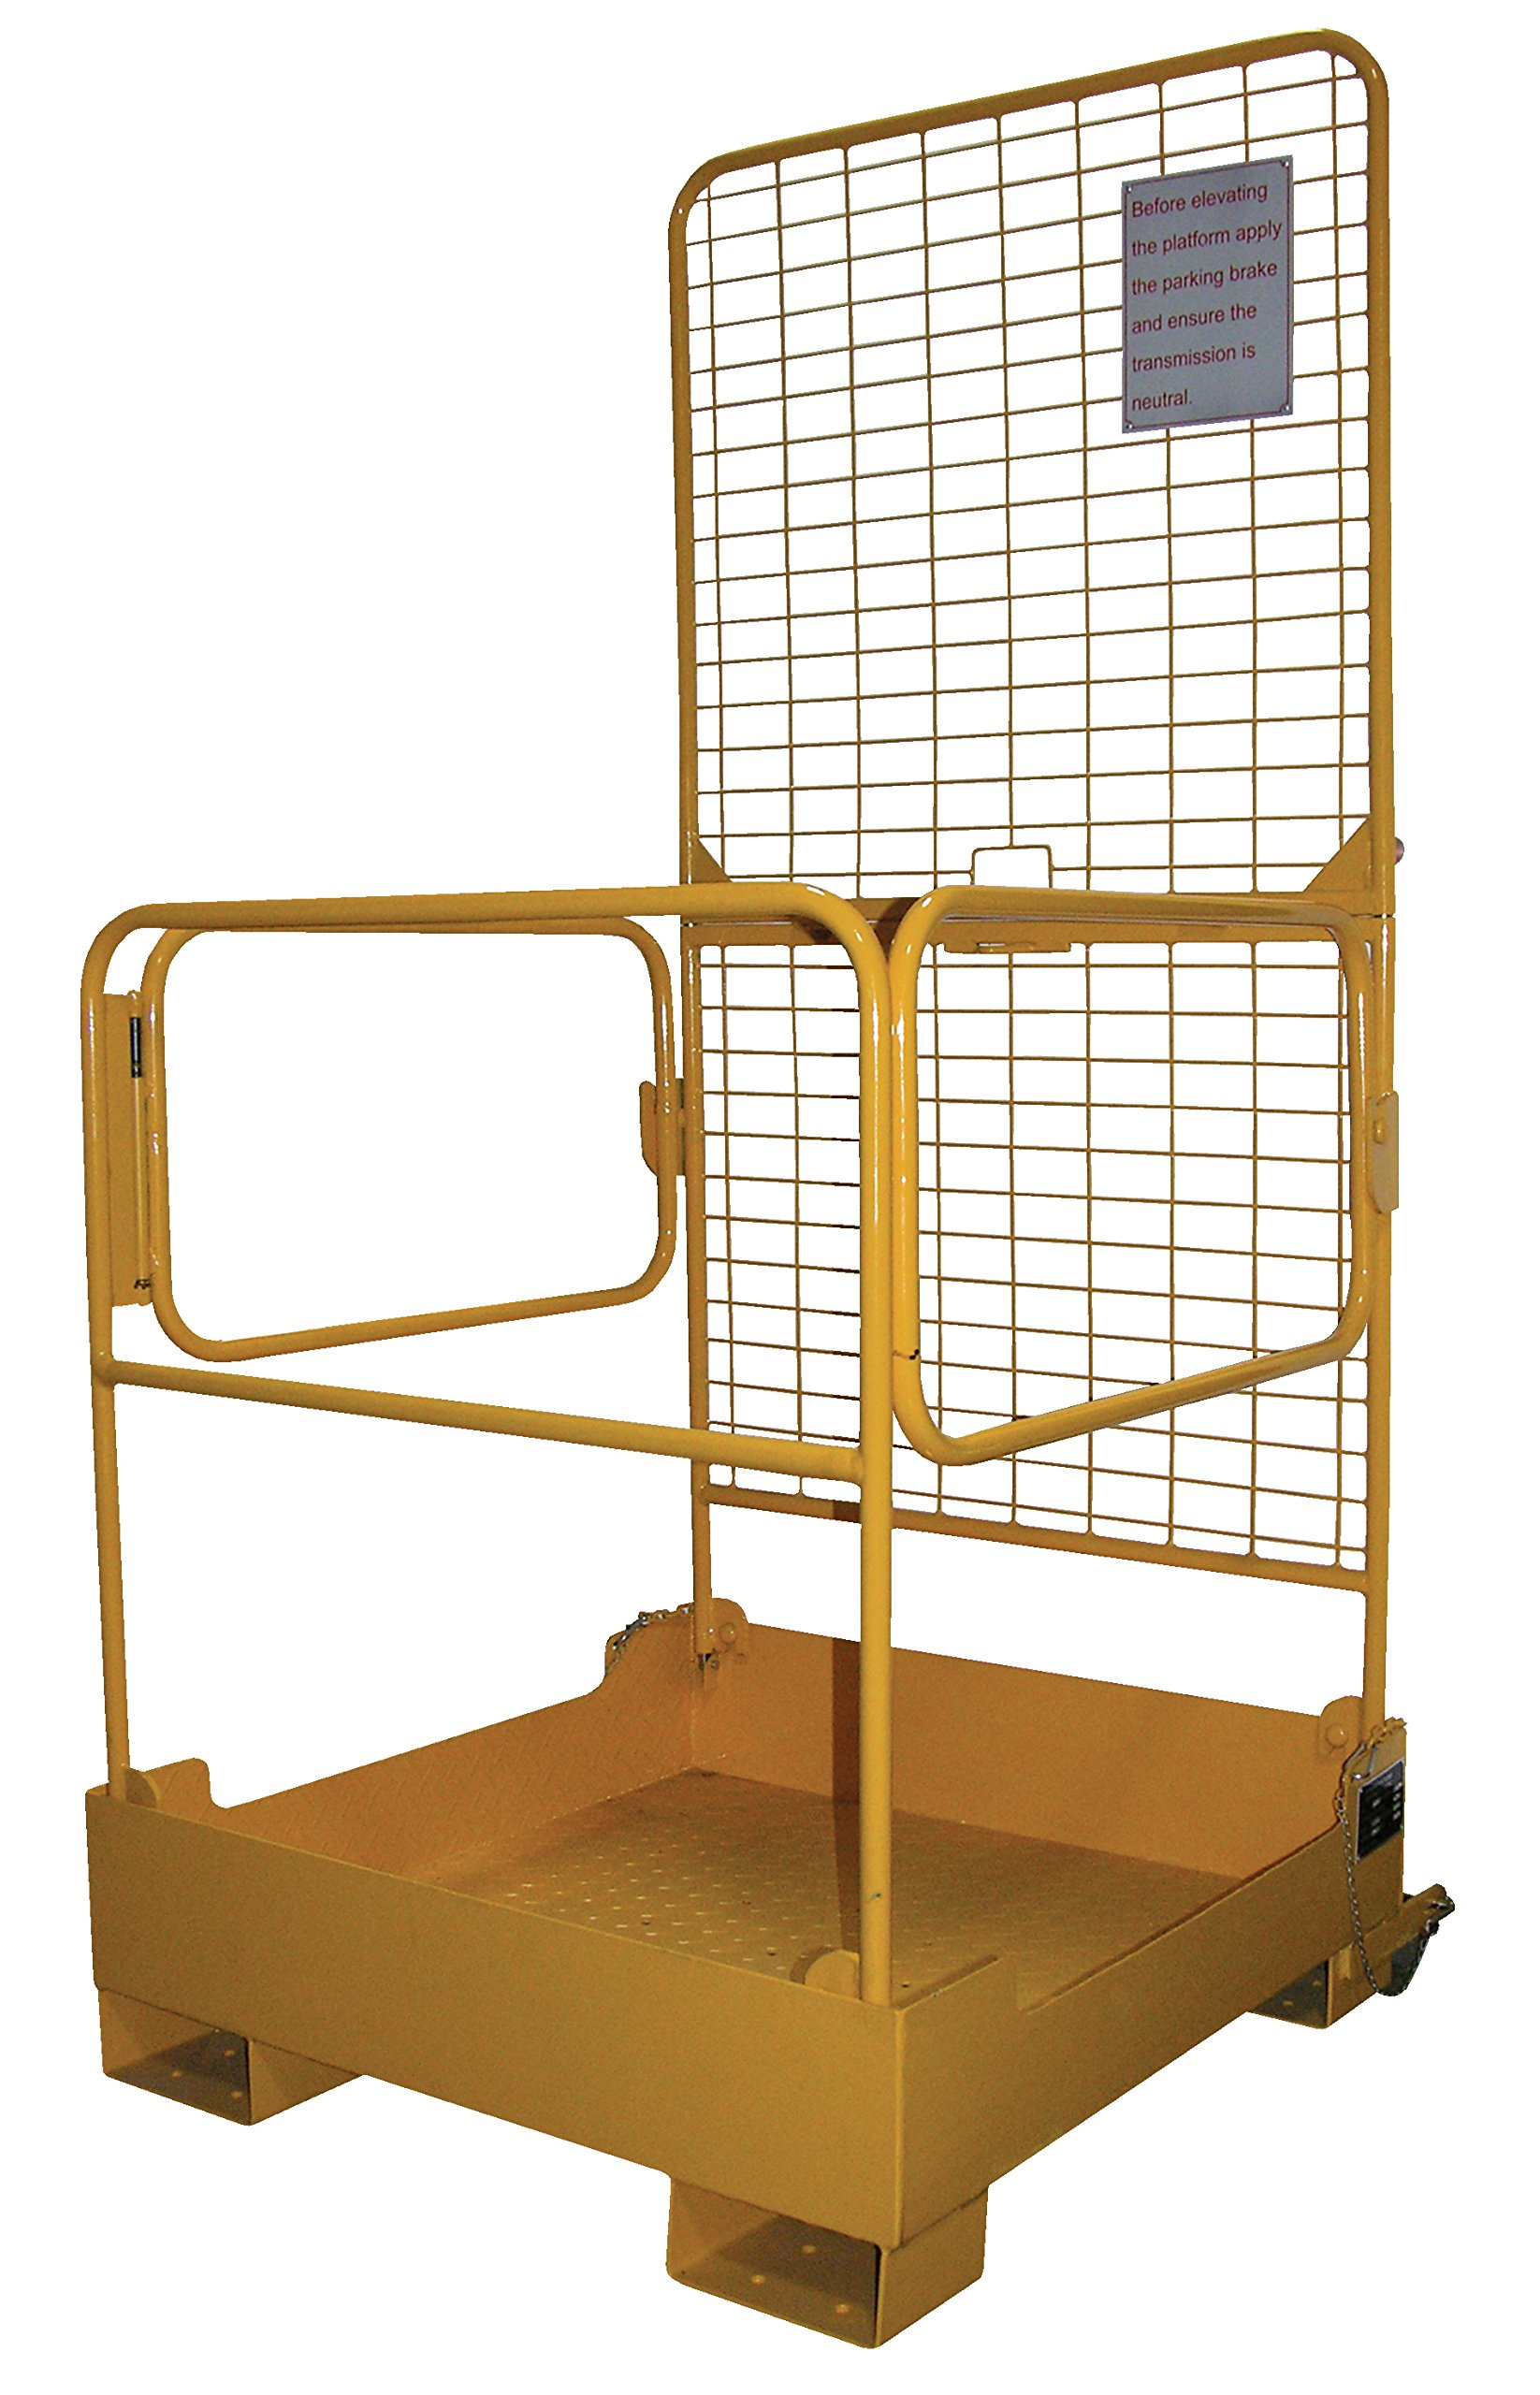 Vestil WP-3737-FD Fold-Down Work Platform, 600 lb Capacity, 37'' x 37'', Powder Coat Yellow, not for use in California